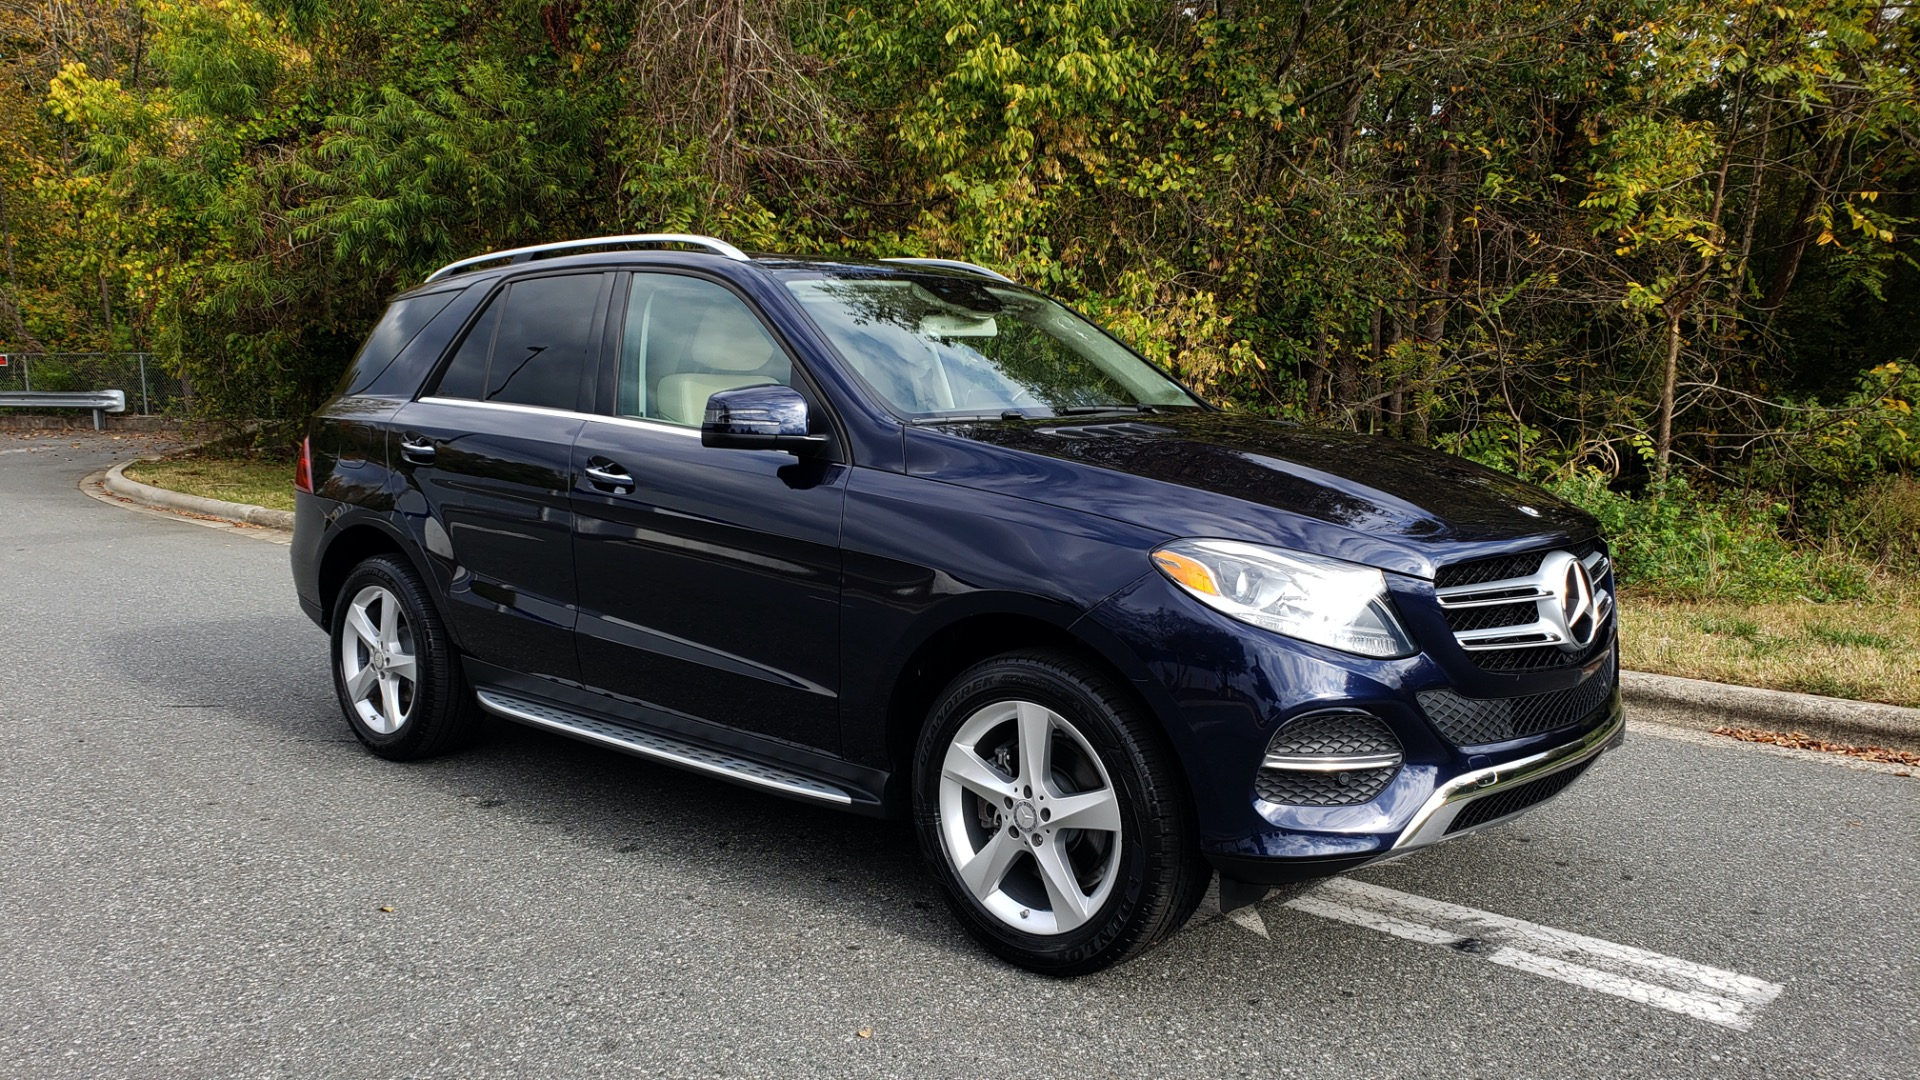 Used 2016 Mercedes-Benz GLE 350 PREMIUM / NAV / SUNROOF / BACK-UP CAMERA / LANE TRACKING for sale Sold at Formula Imports in Charlotte NC 28227 10